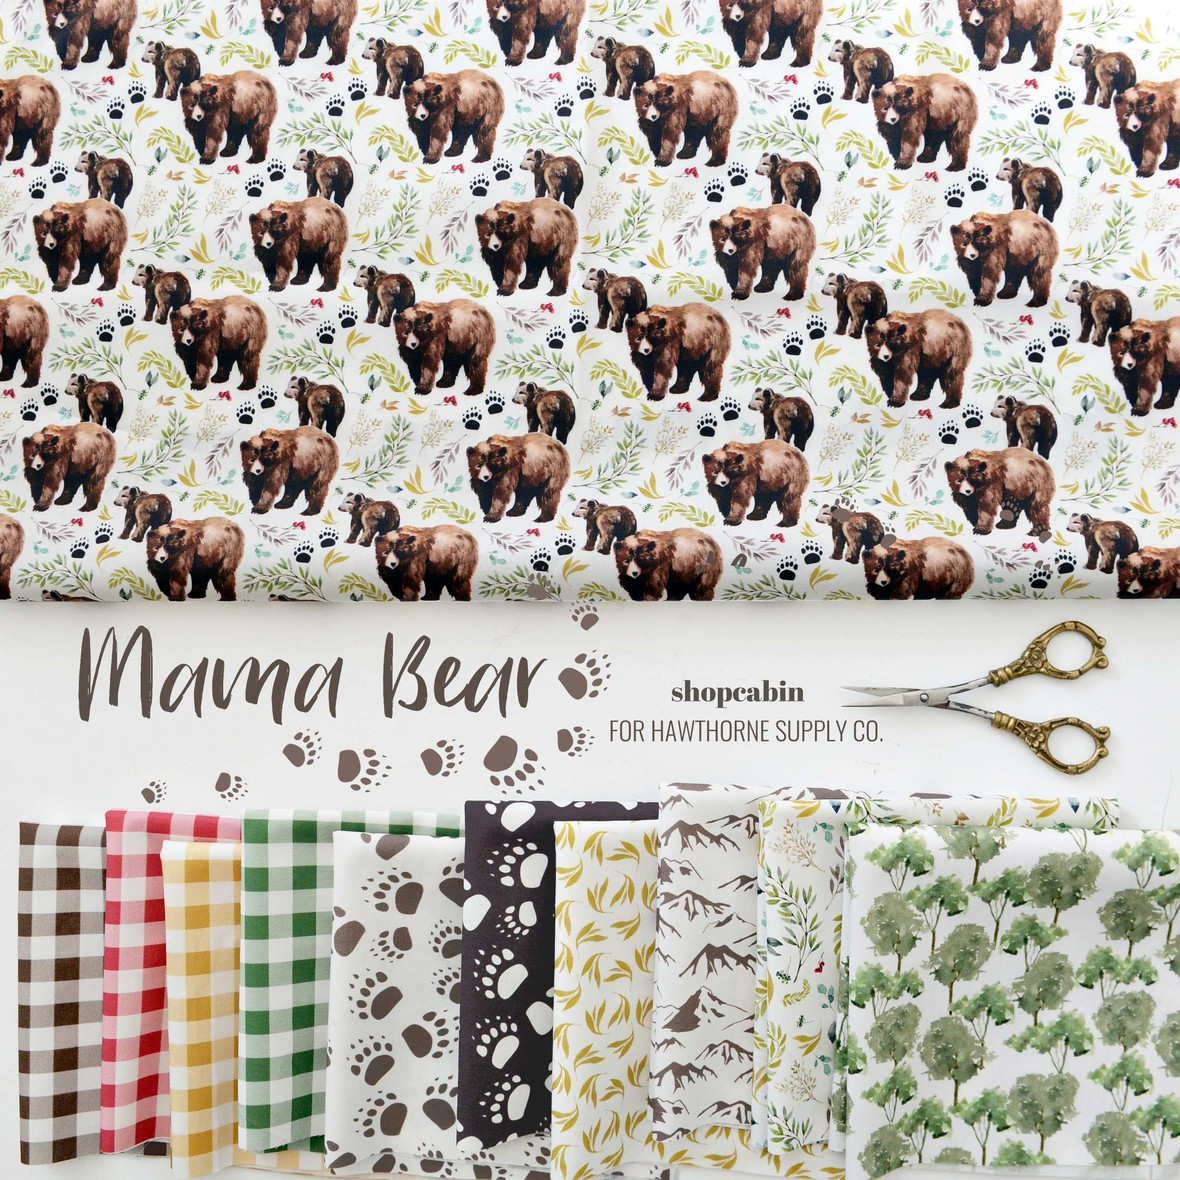 Mama Bear Fabric Shopcabin for Hawthorne Supply Co.